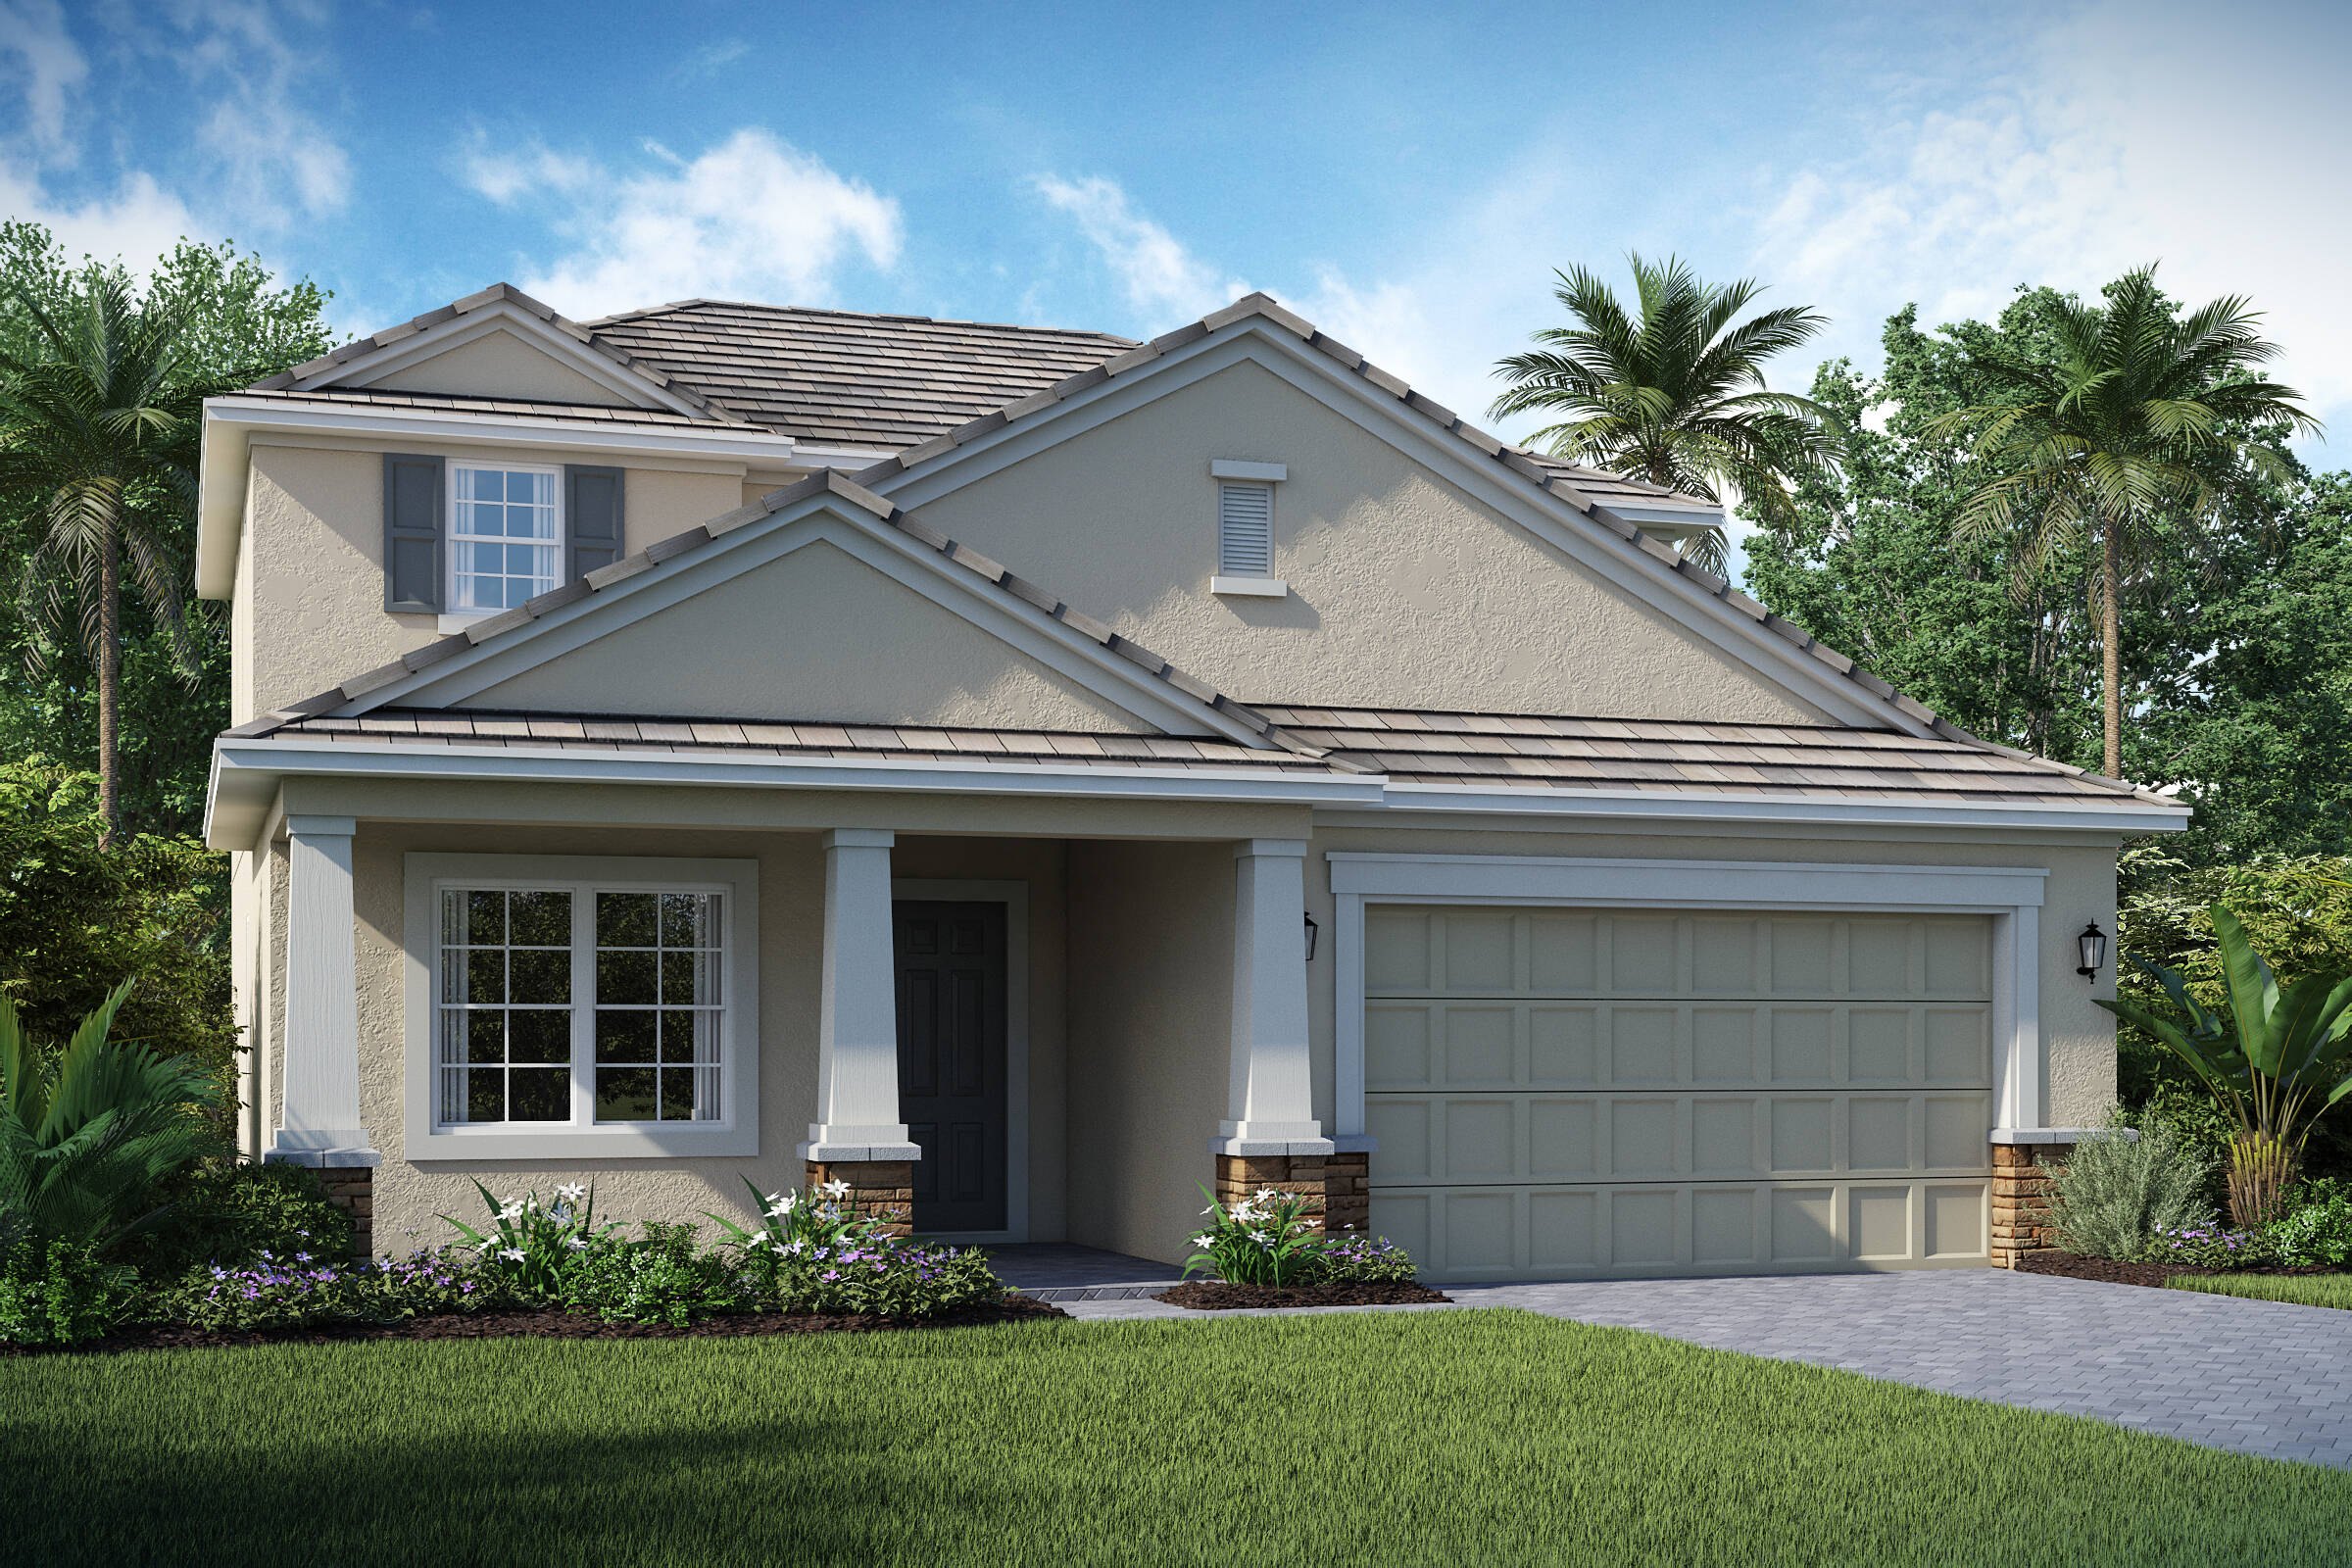 Bessemer C exterior lake florence preserve new homes in orlando florida